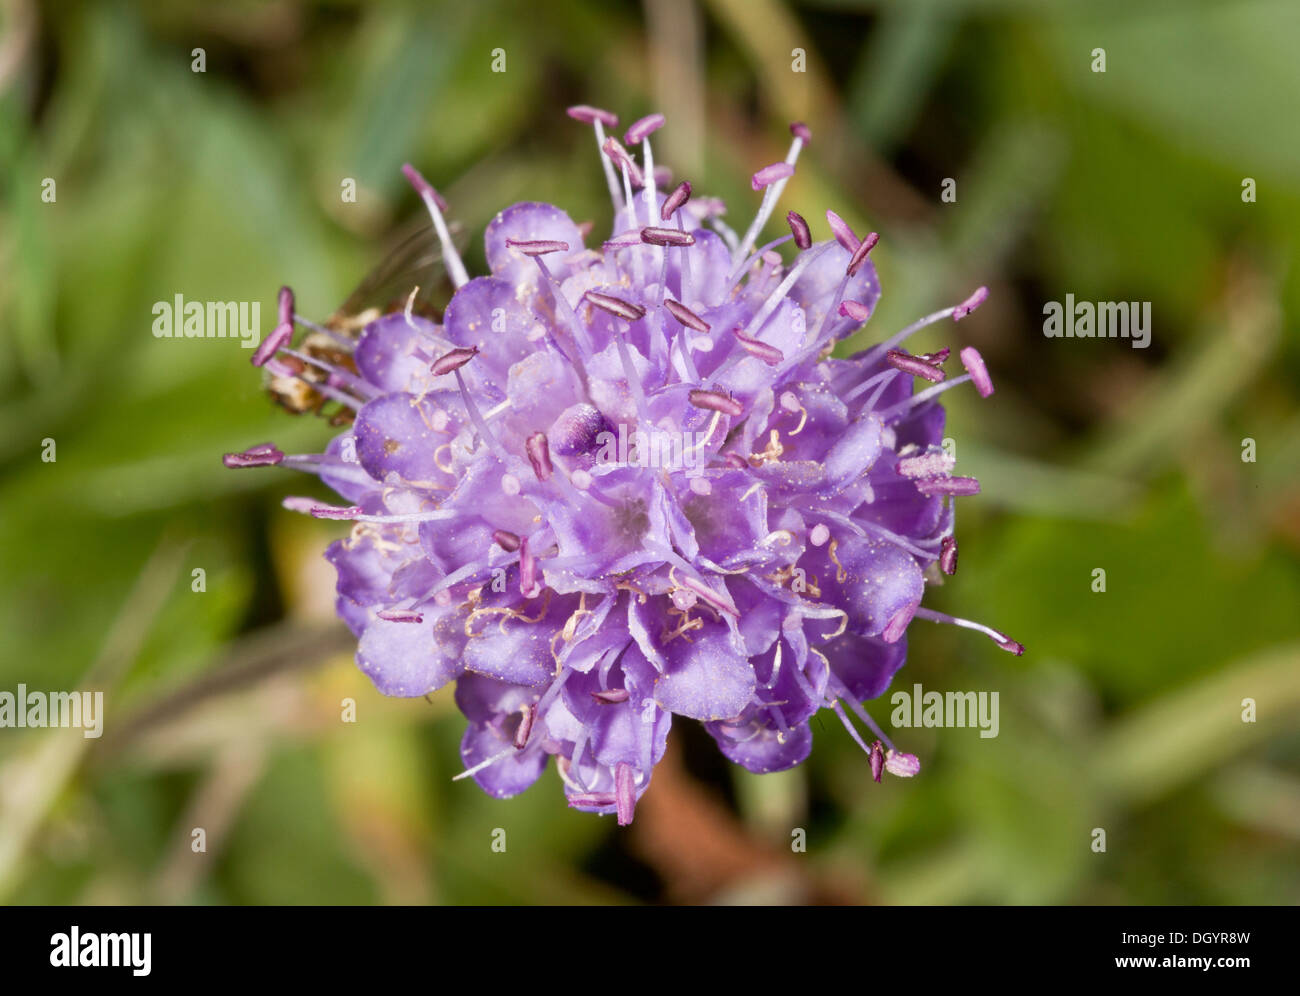 Devil's-bit Scabious, Succisa pratensis close-up of flower cluster. - Stock Image